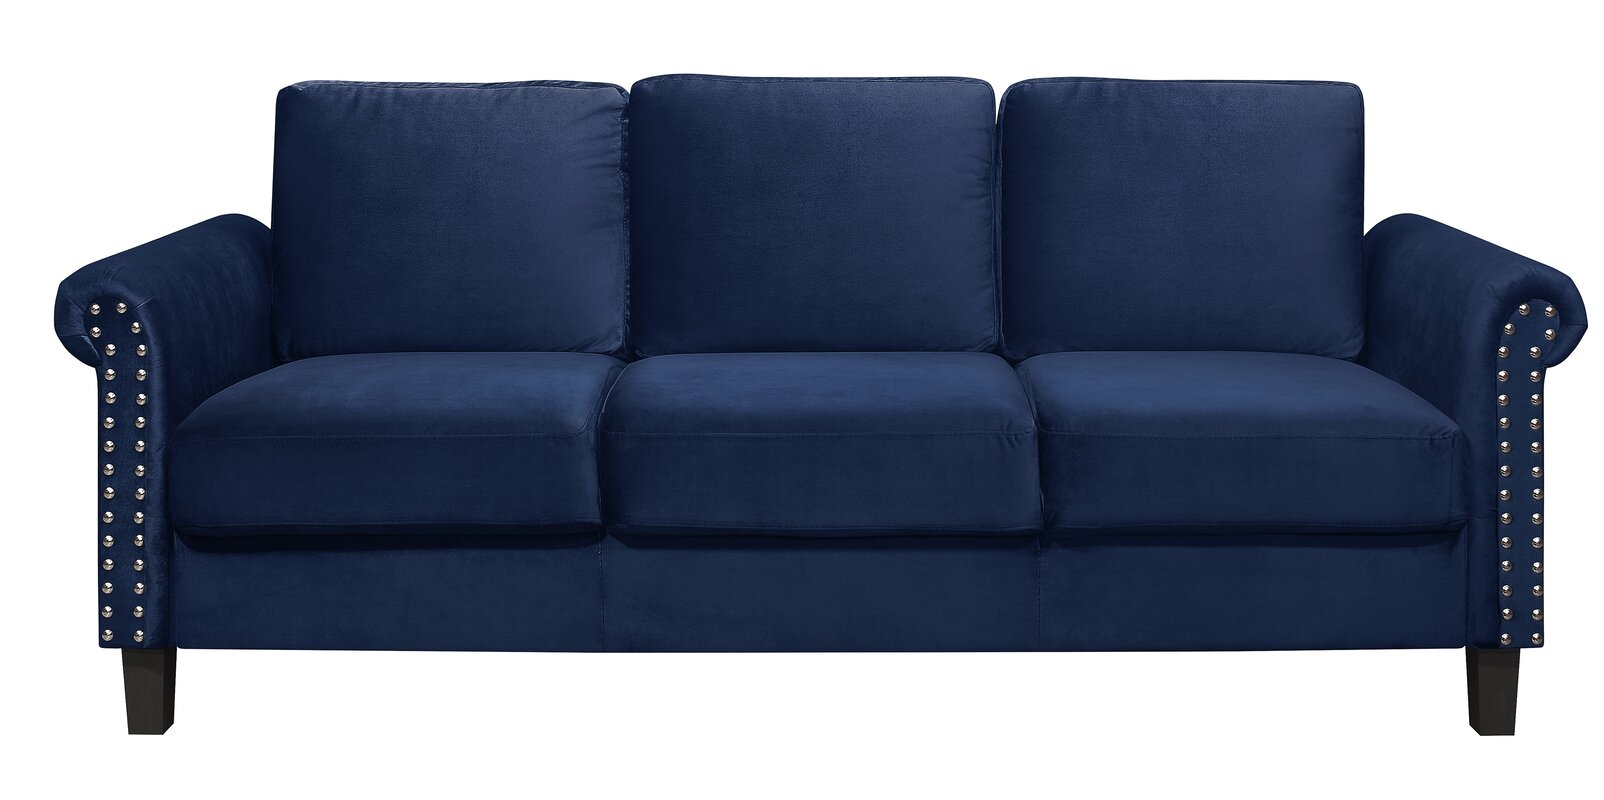 Home Design Rittenhouse Sofa   Item# 11295